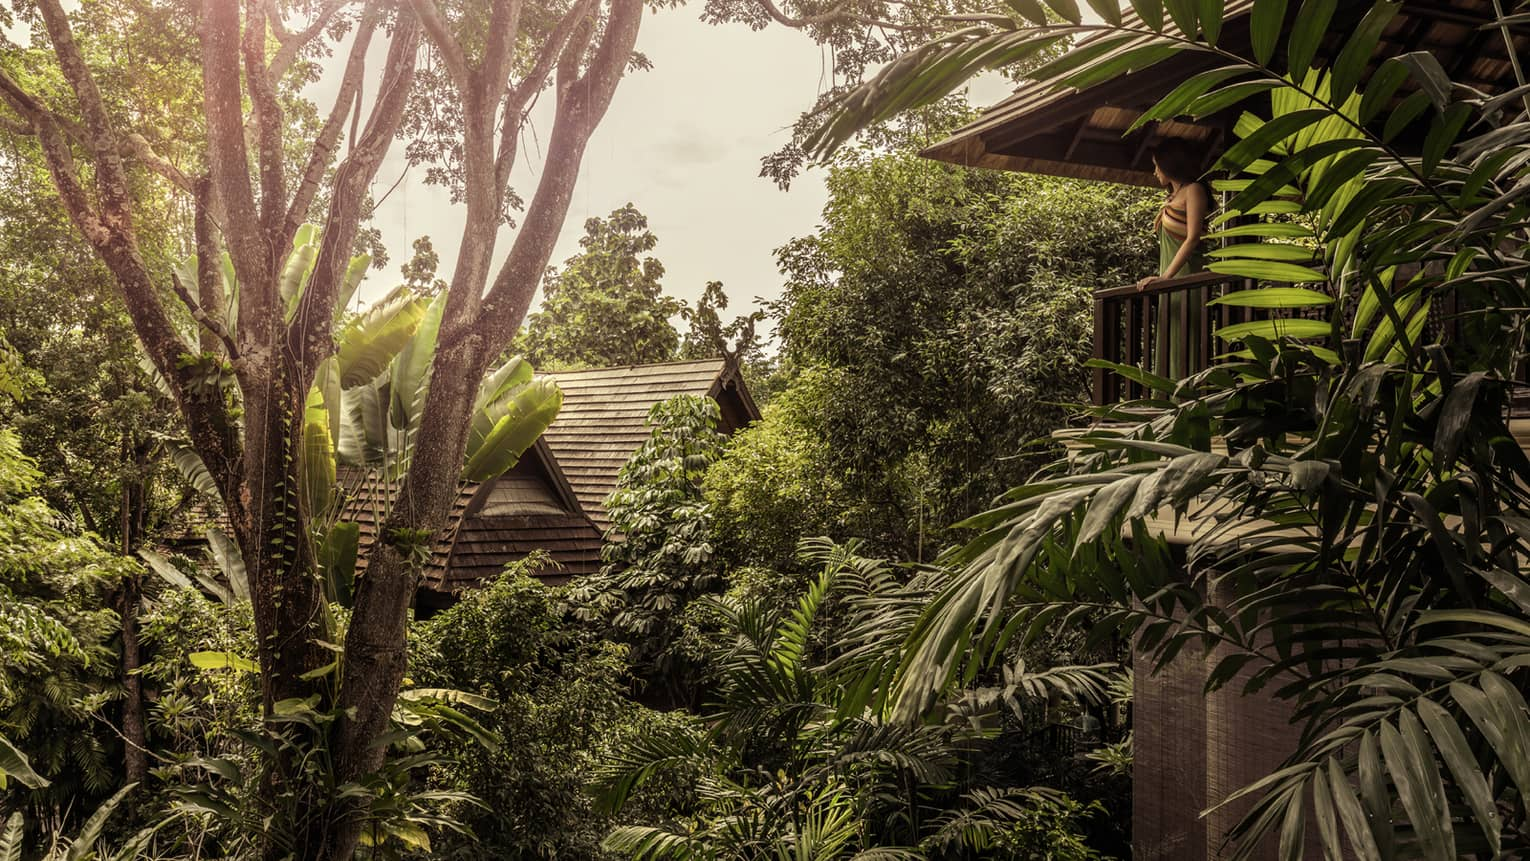 Woman on villa balcony looks out over tropical palms, trees, roof of next building